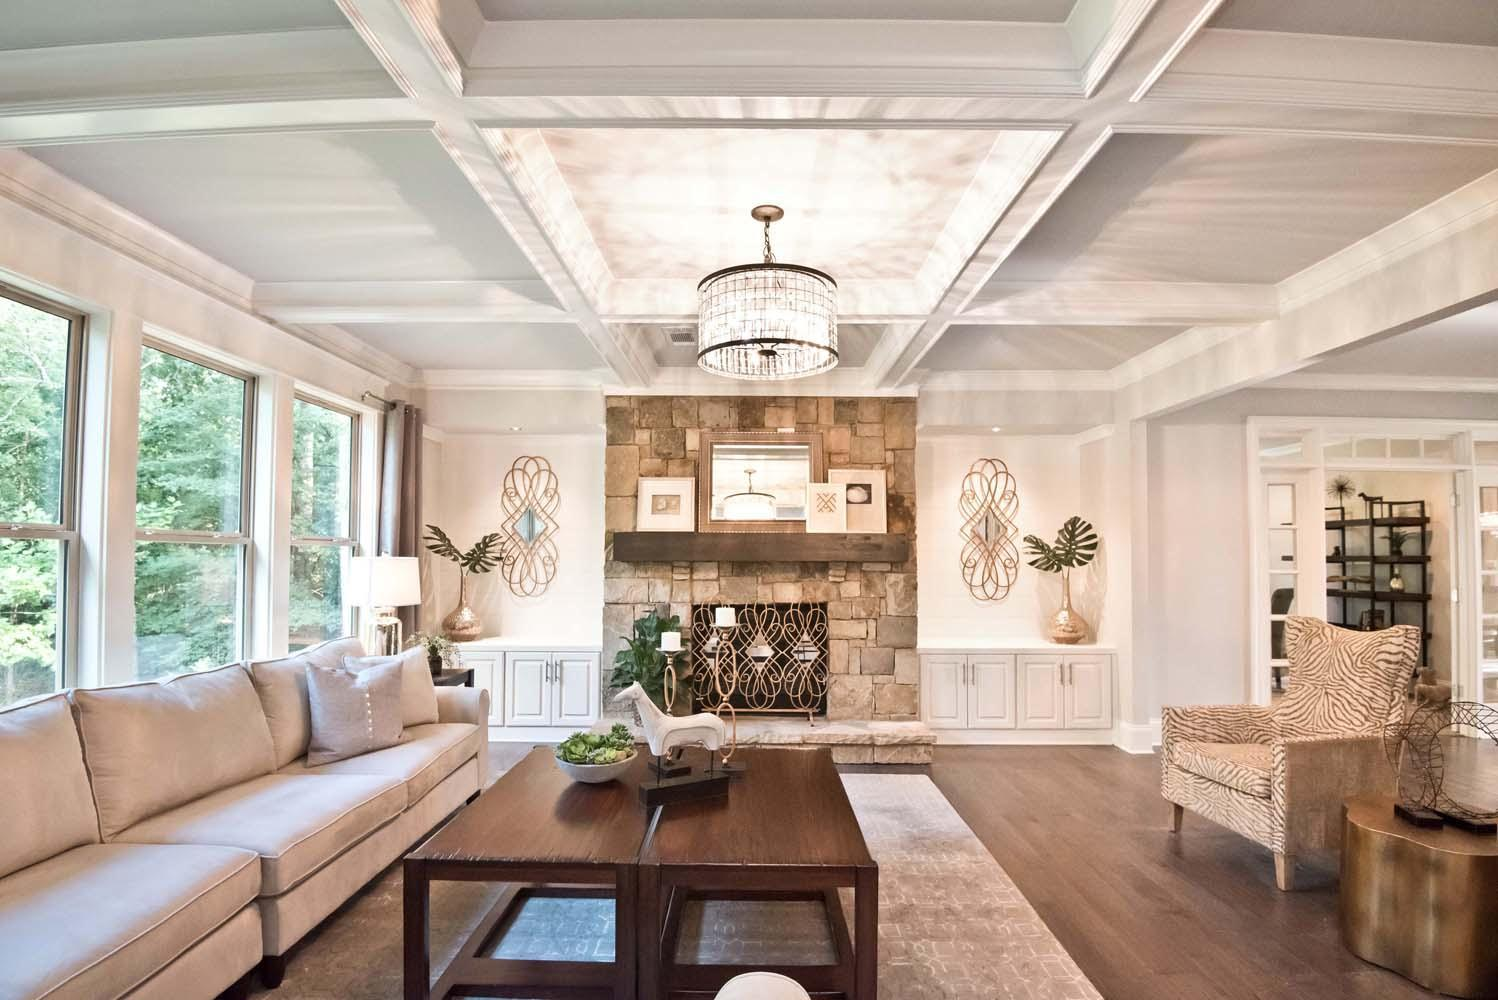 Living Area featured in the Barkley By Chafin Communities in Atlanta, GA